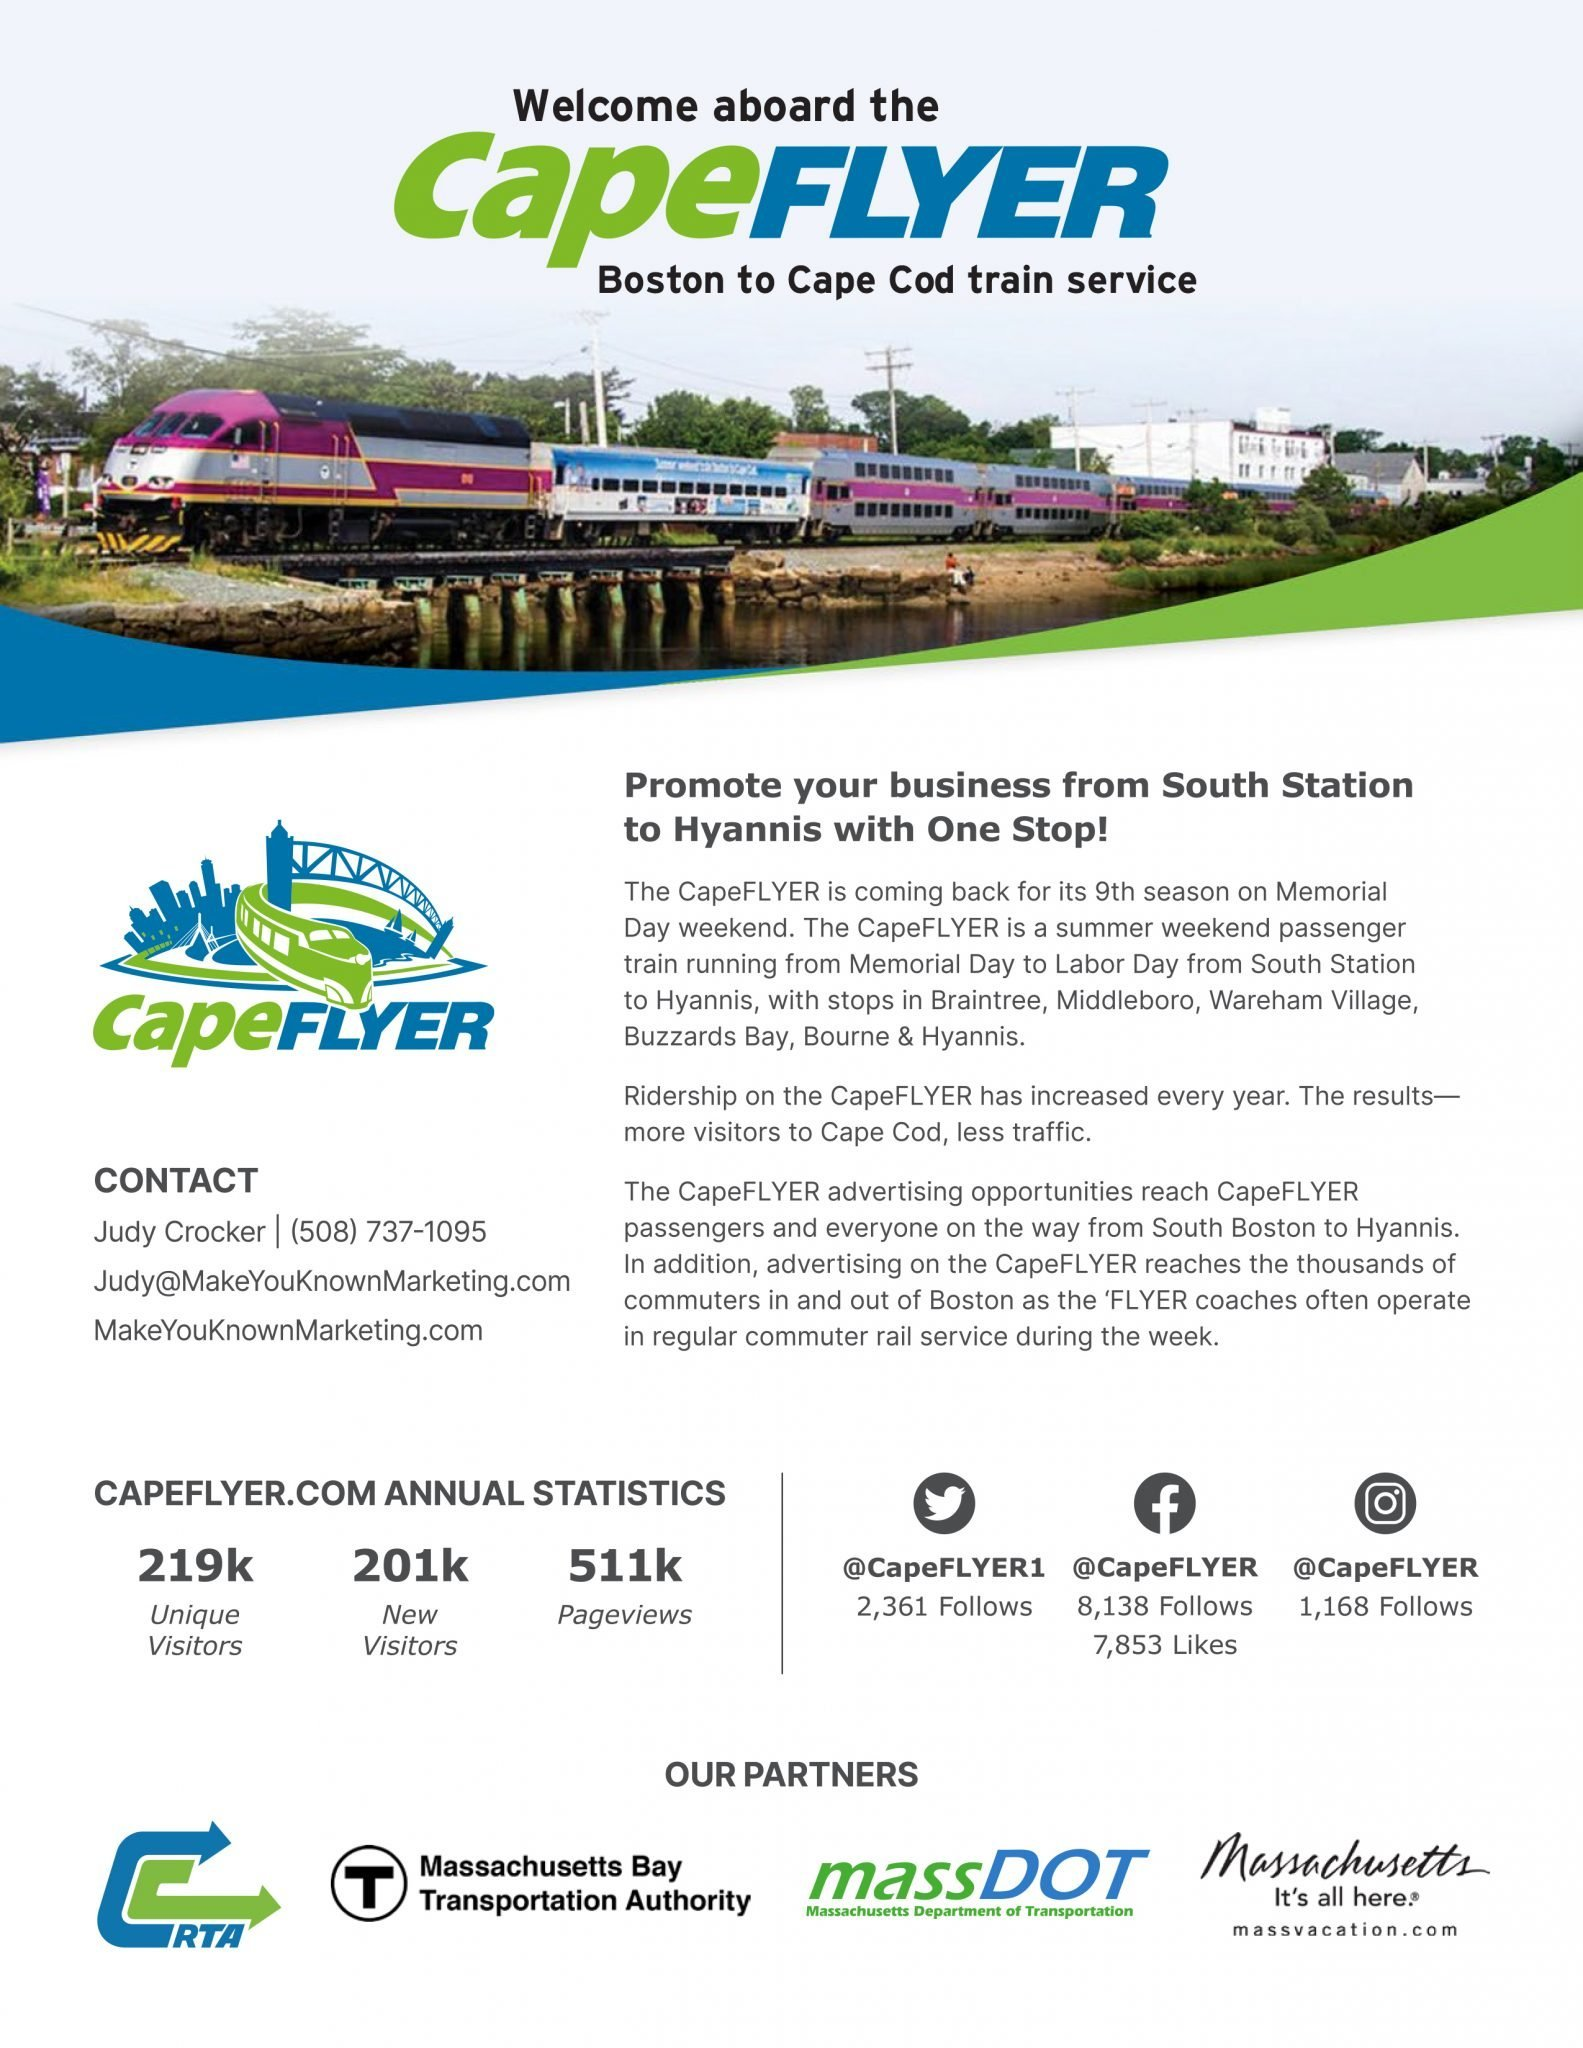 Promote your Business from South Station (Boston) to Hyannis with CapeFLYER